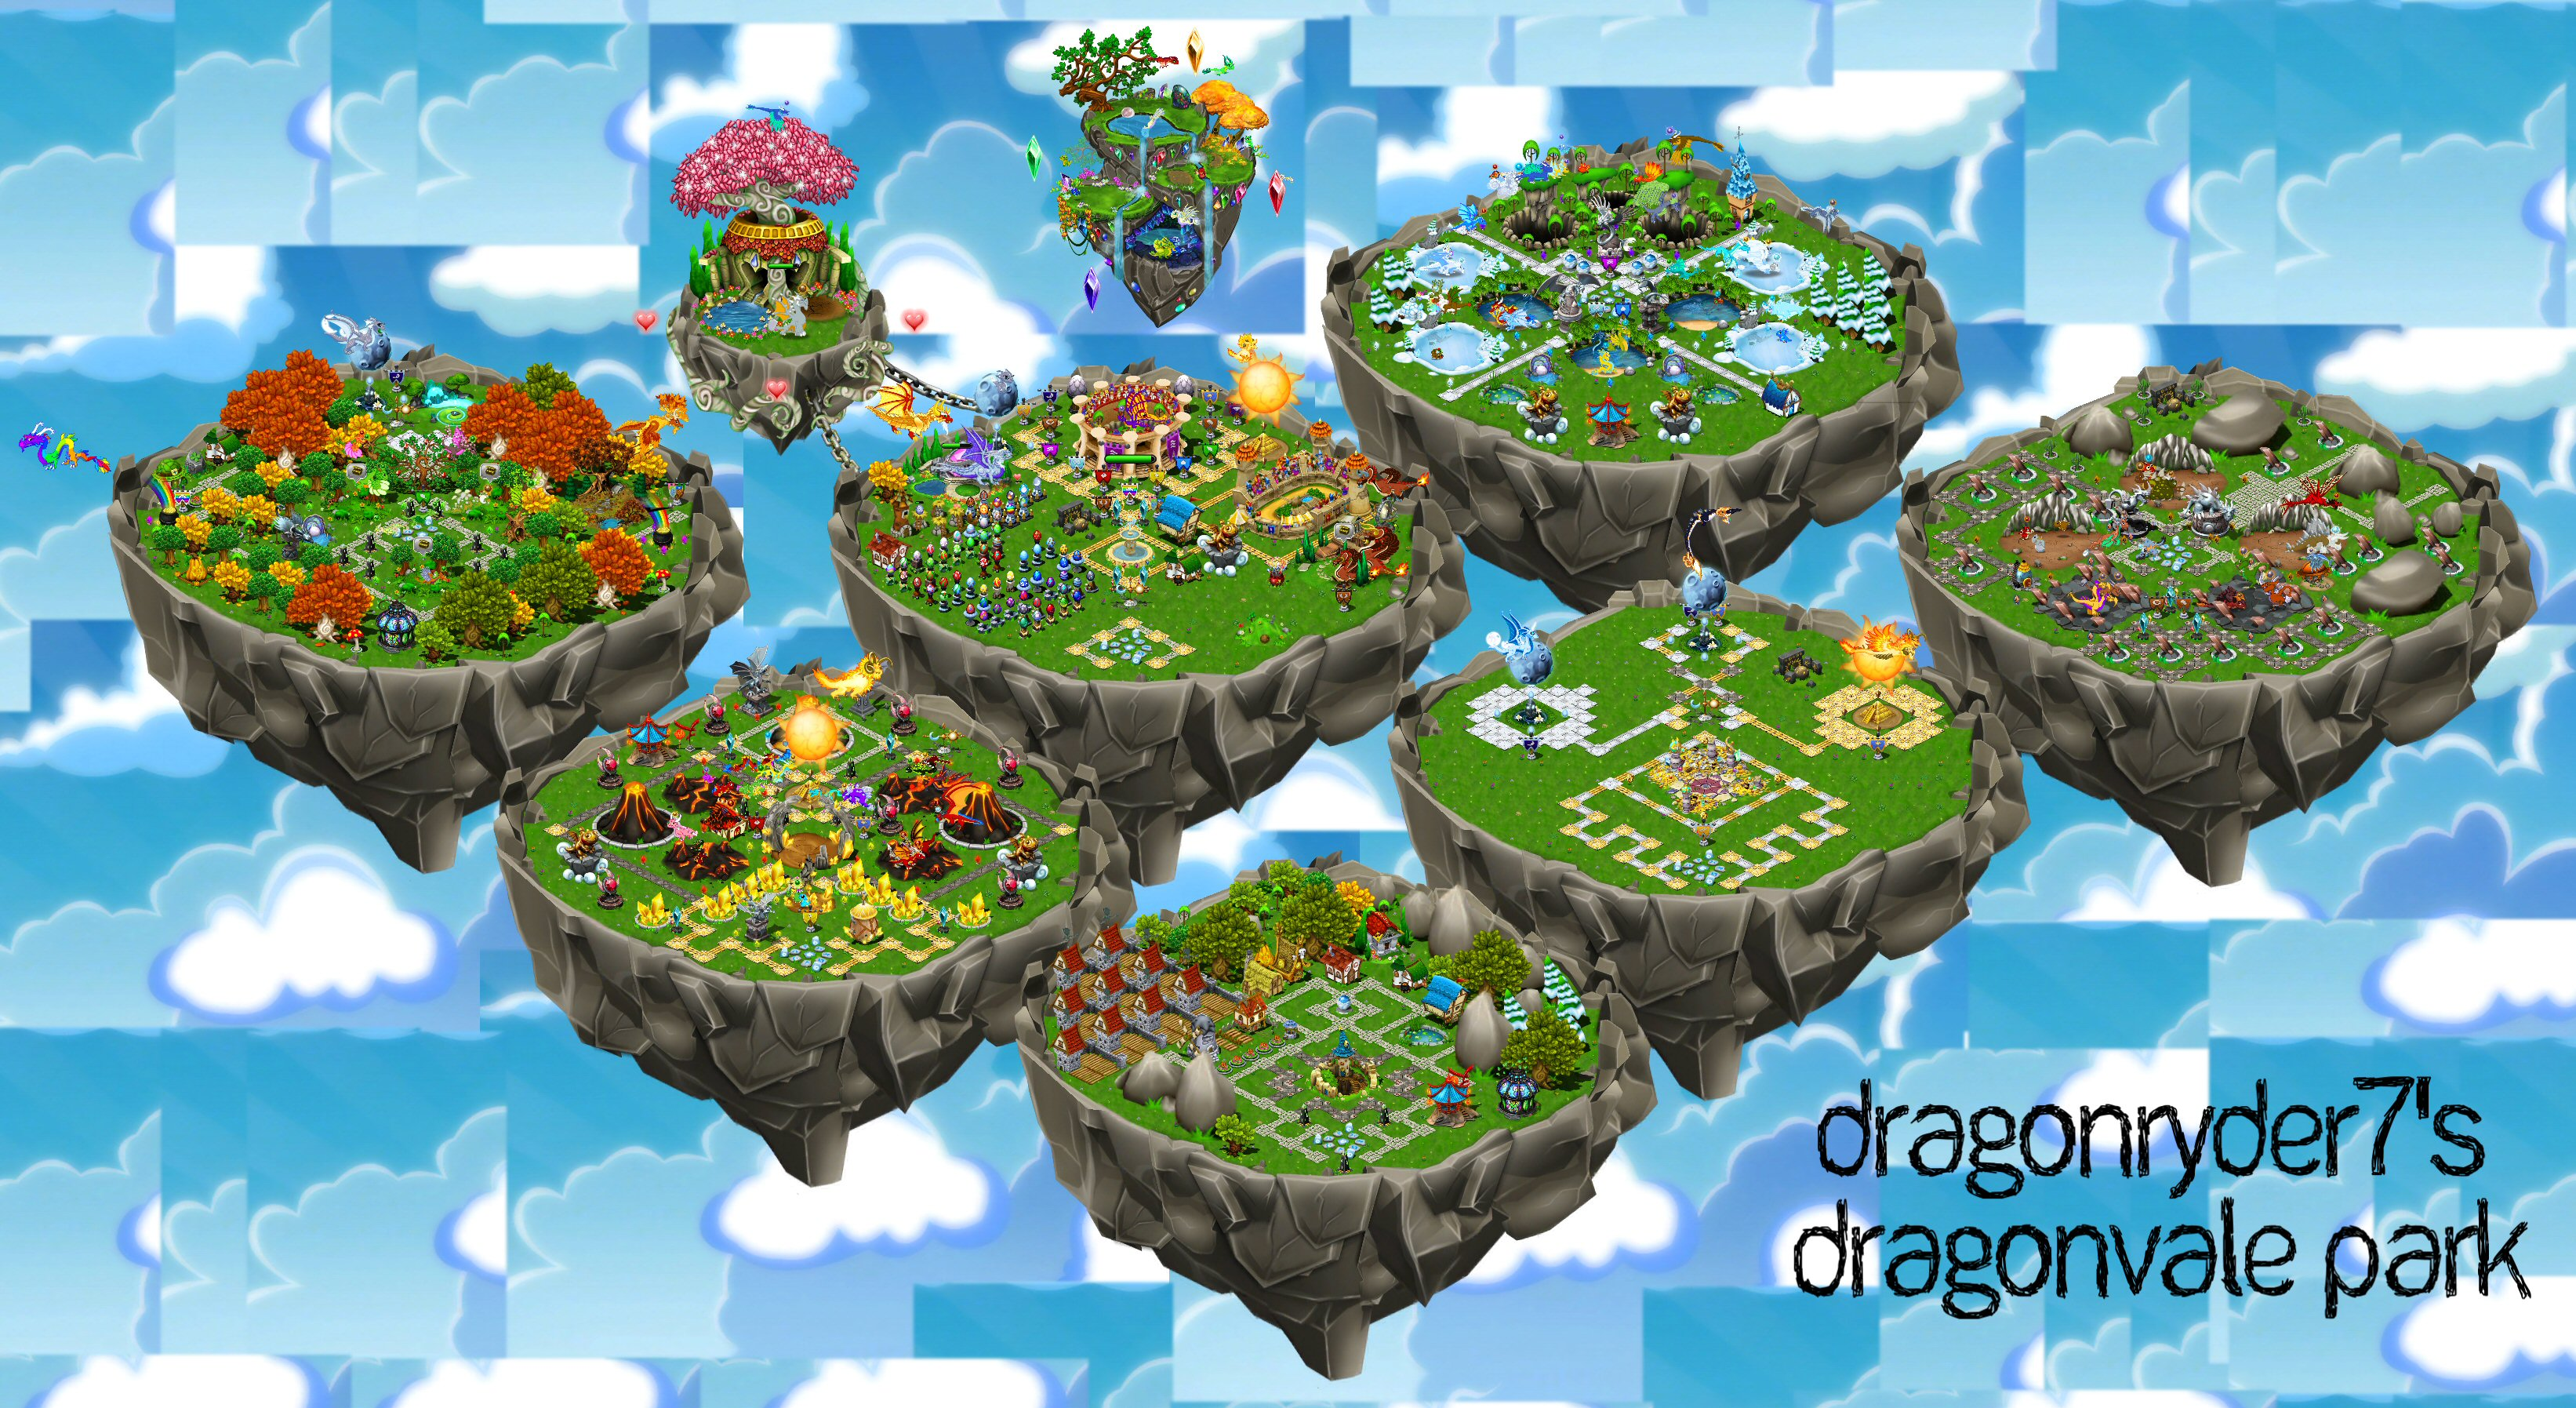 User blog:DragonRyder7/My DragonVale Park - DragonVale Wiki